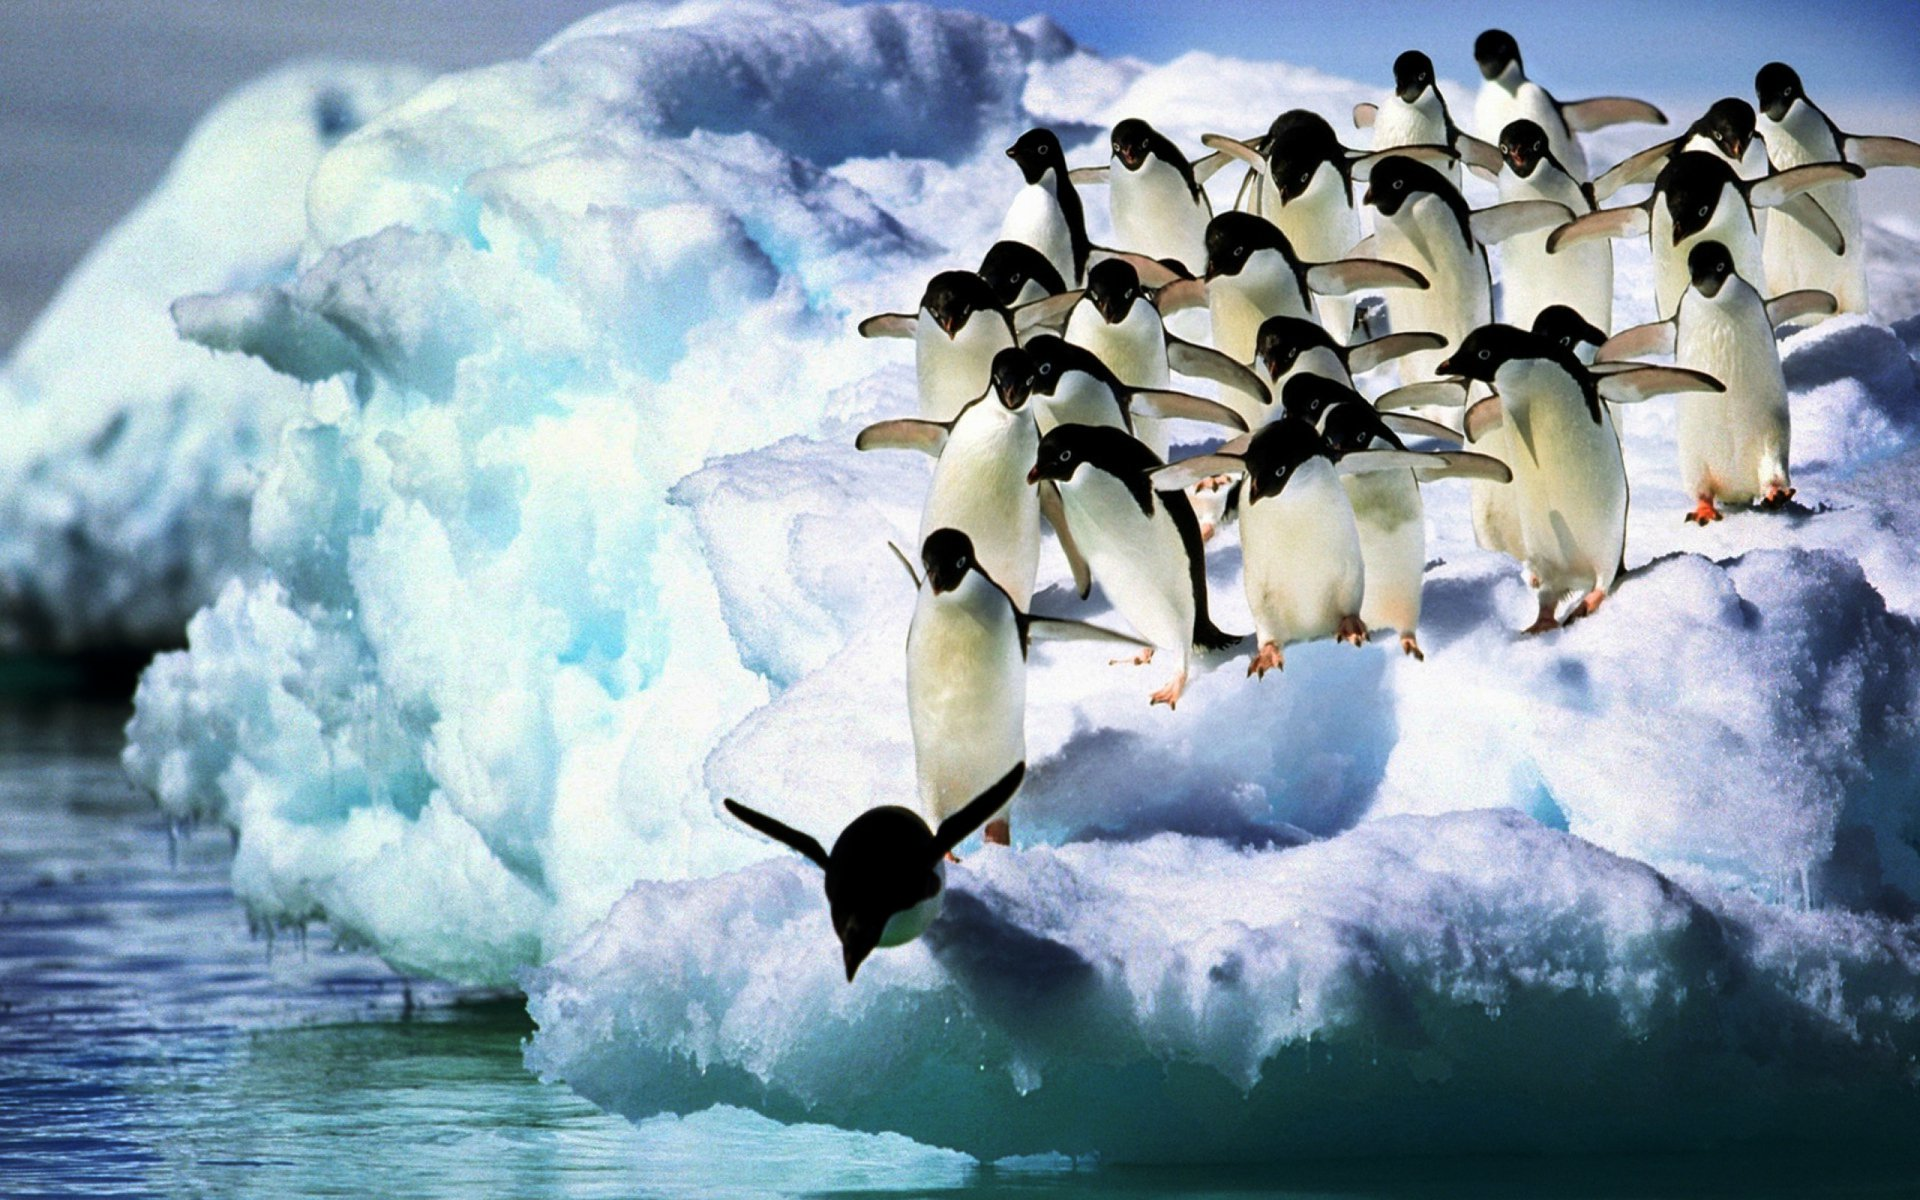 Cute Babies Hd Wallpapers 1366x768 Adelie Penguins Hd Wallpaper Background Image